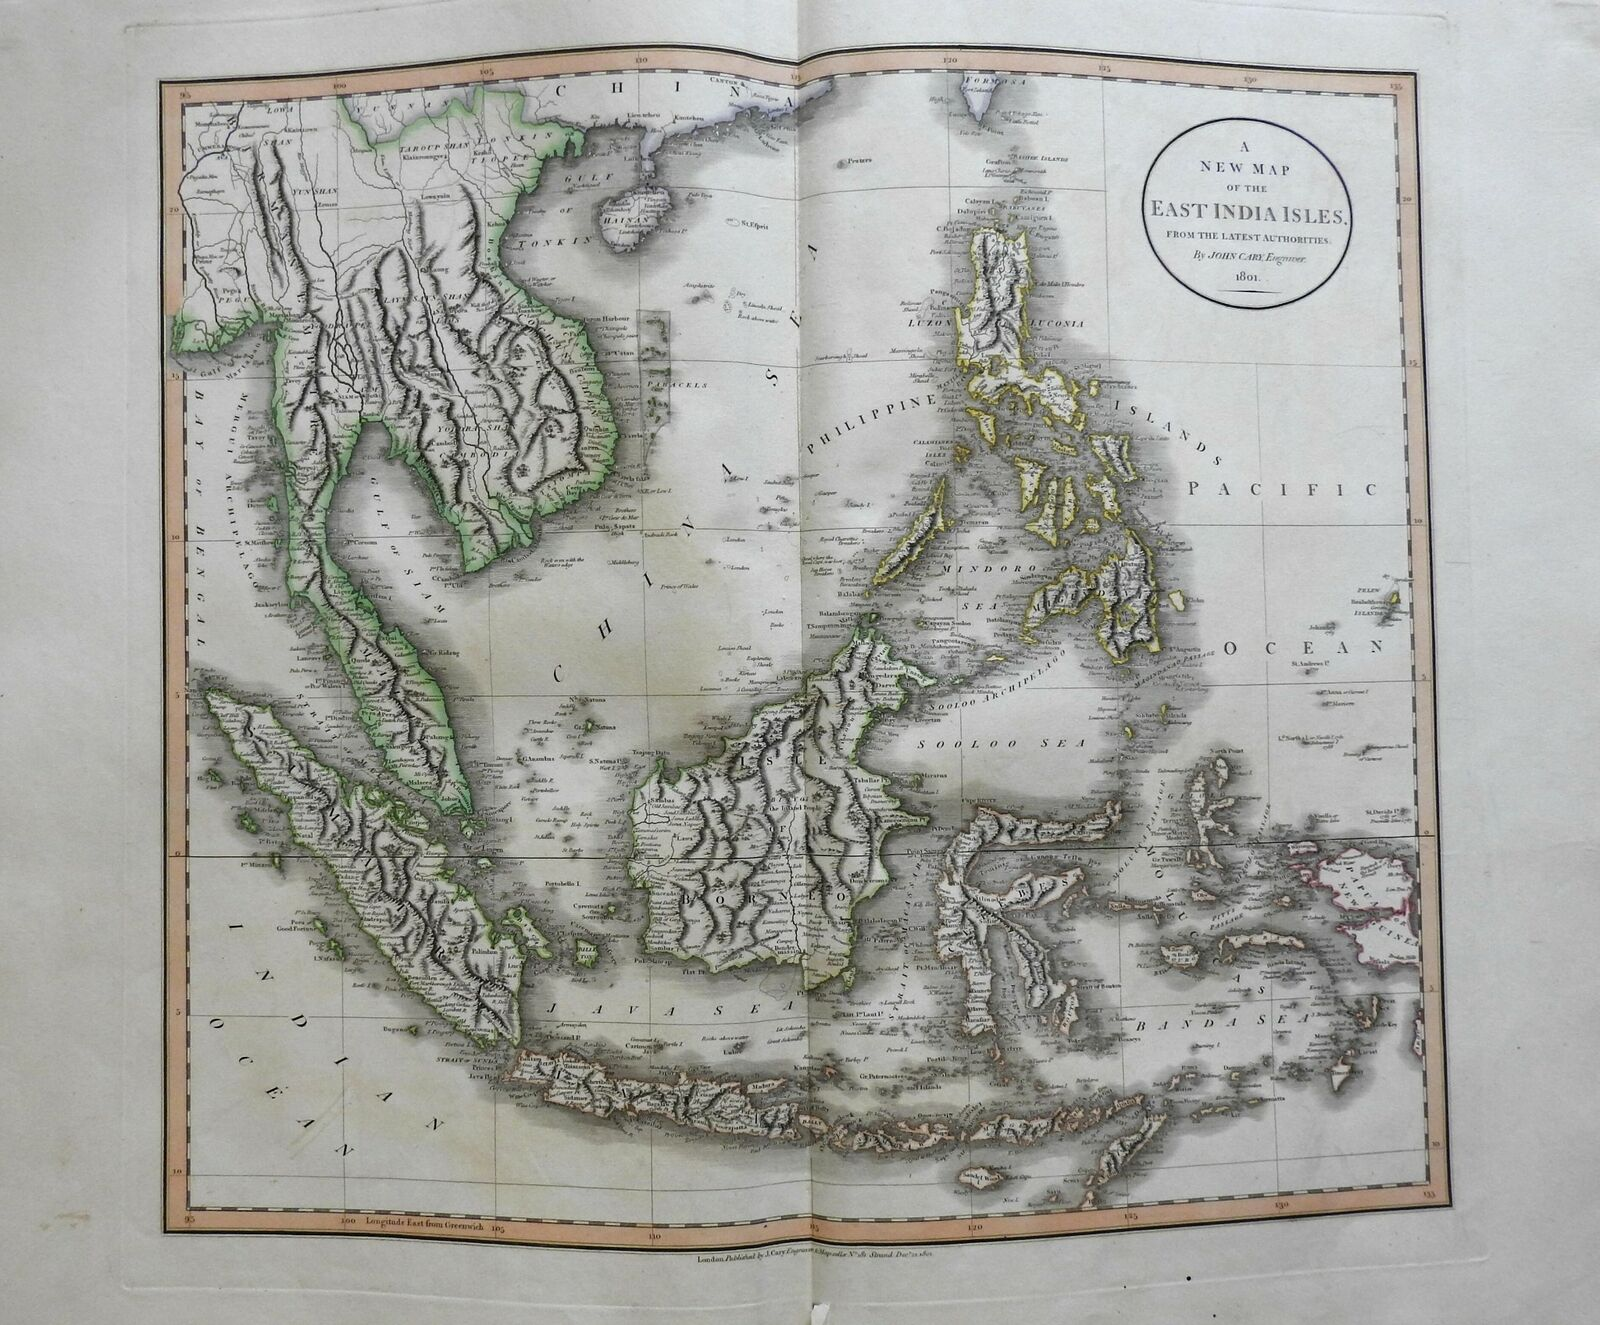 East Indies islands Southeast Asia Malaysia Philippines Java 1801 Cary folio map